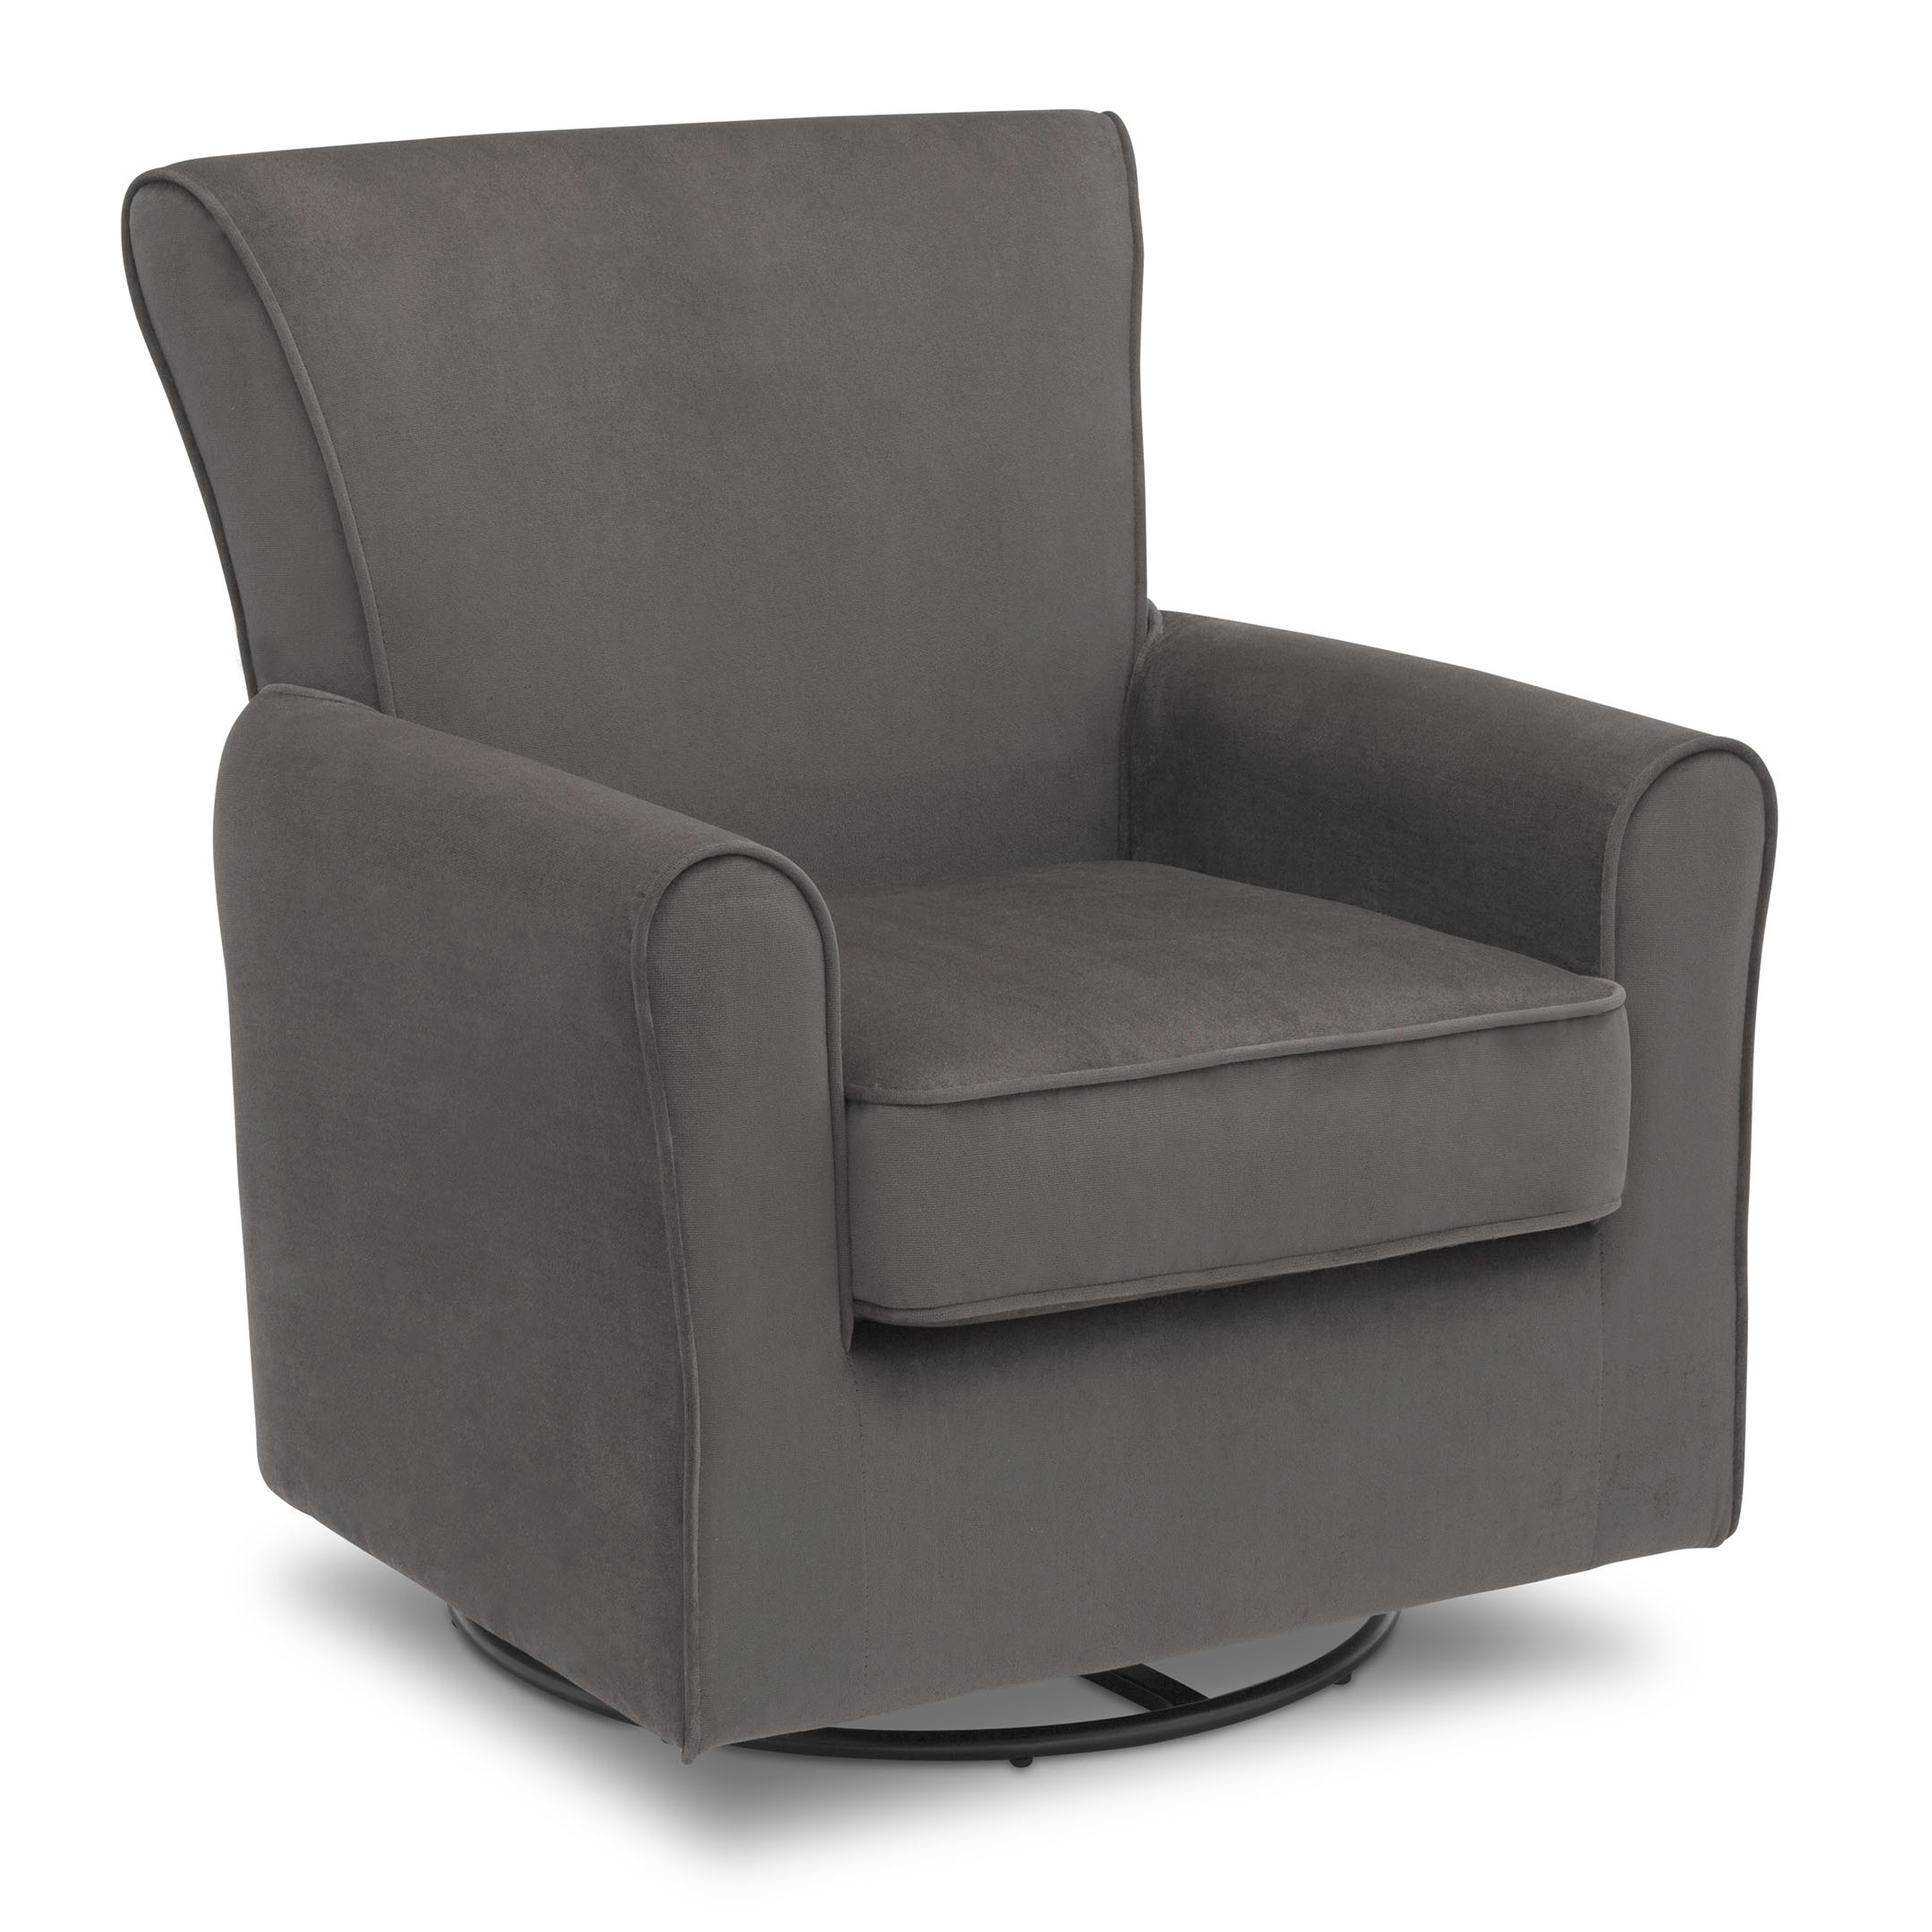 Delta children elena glider swivel rocker chair grey velvet